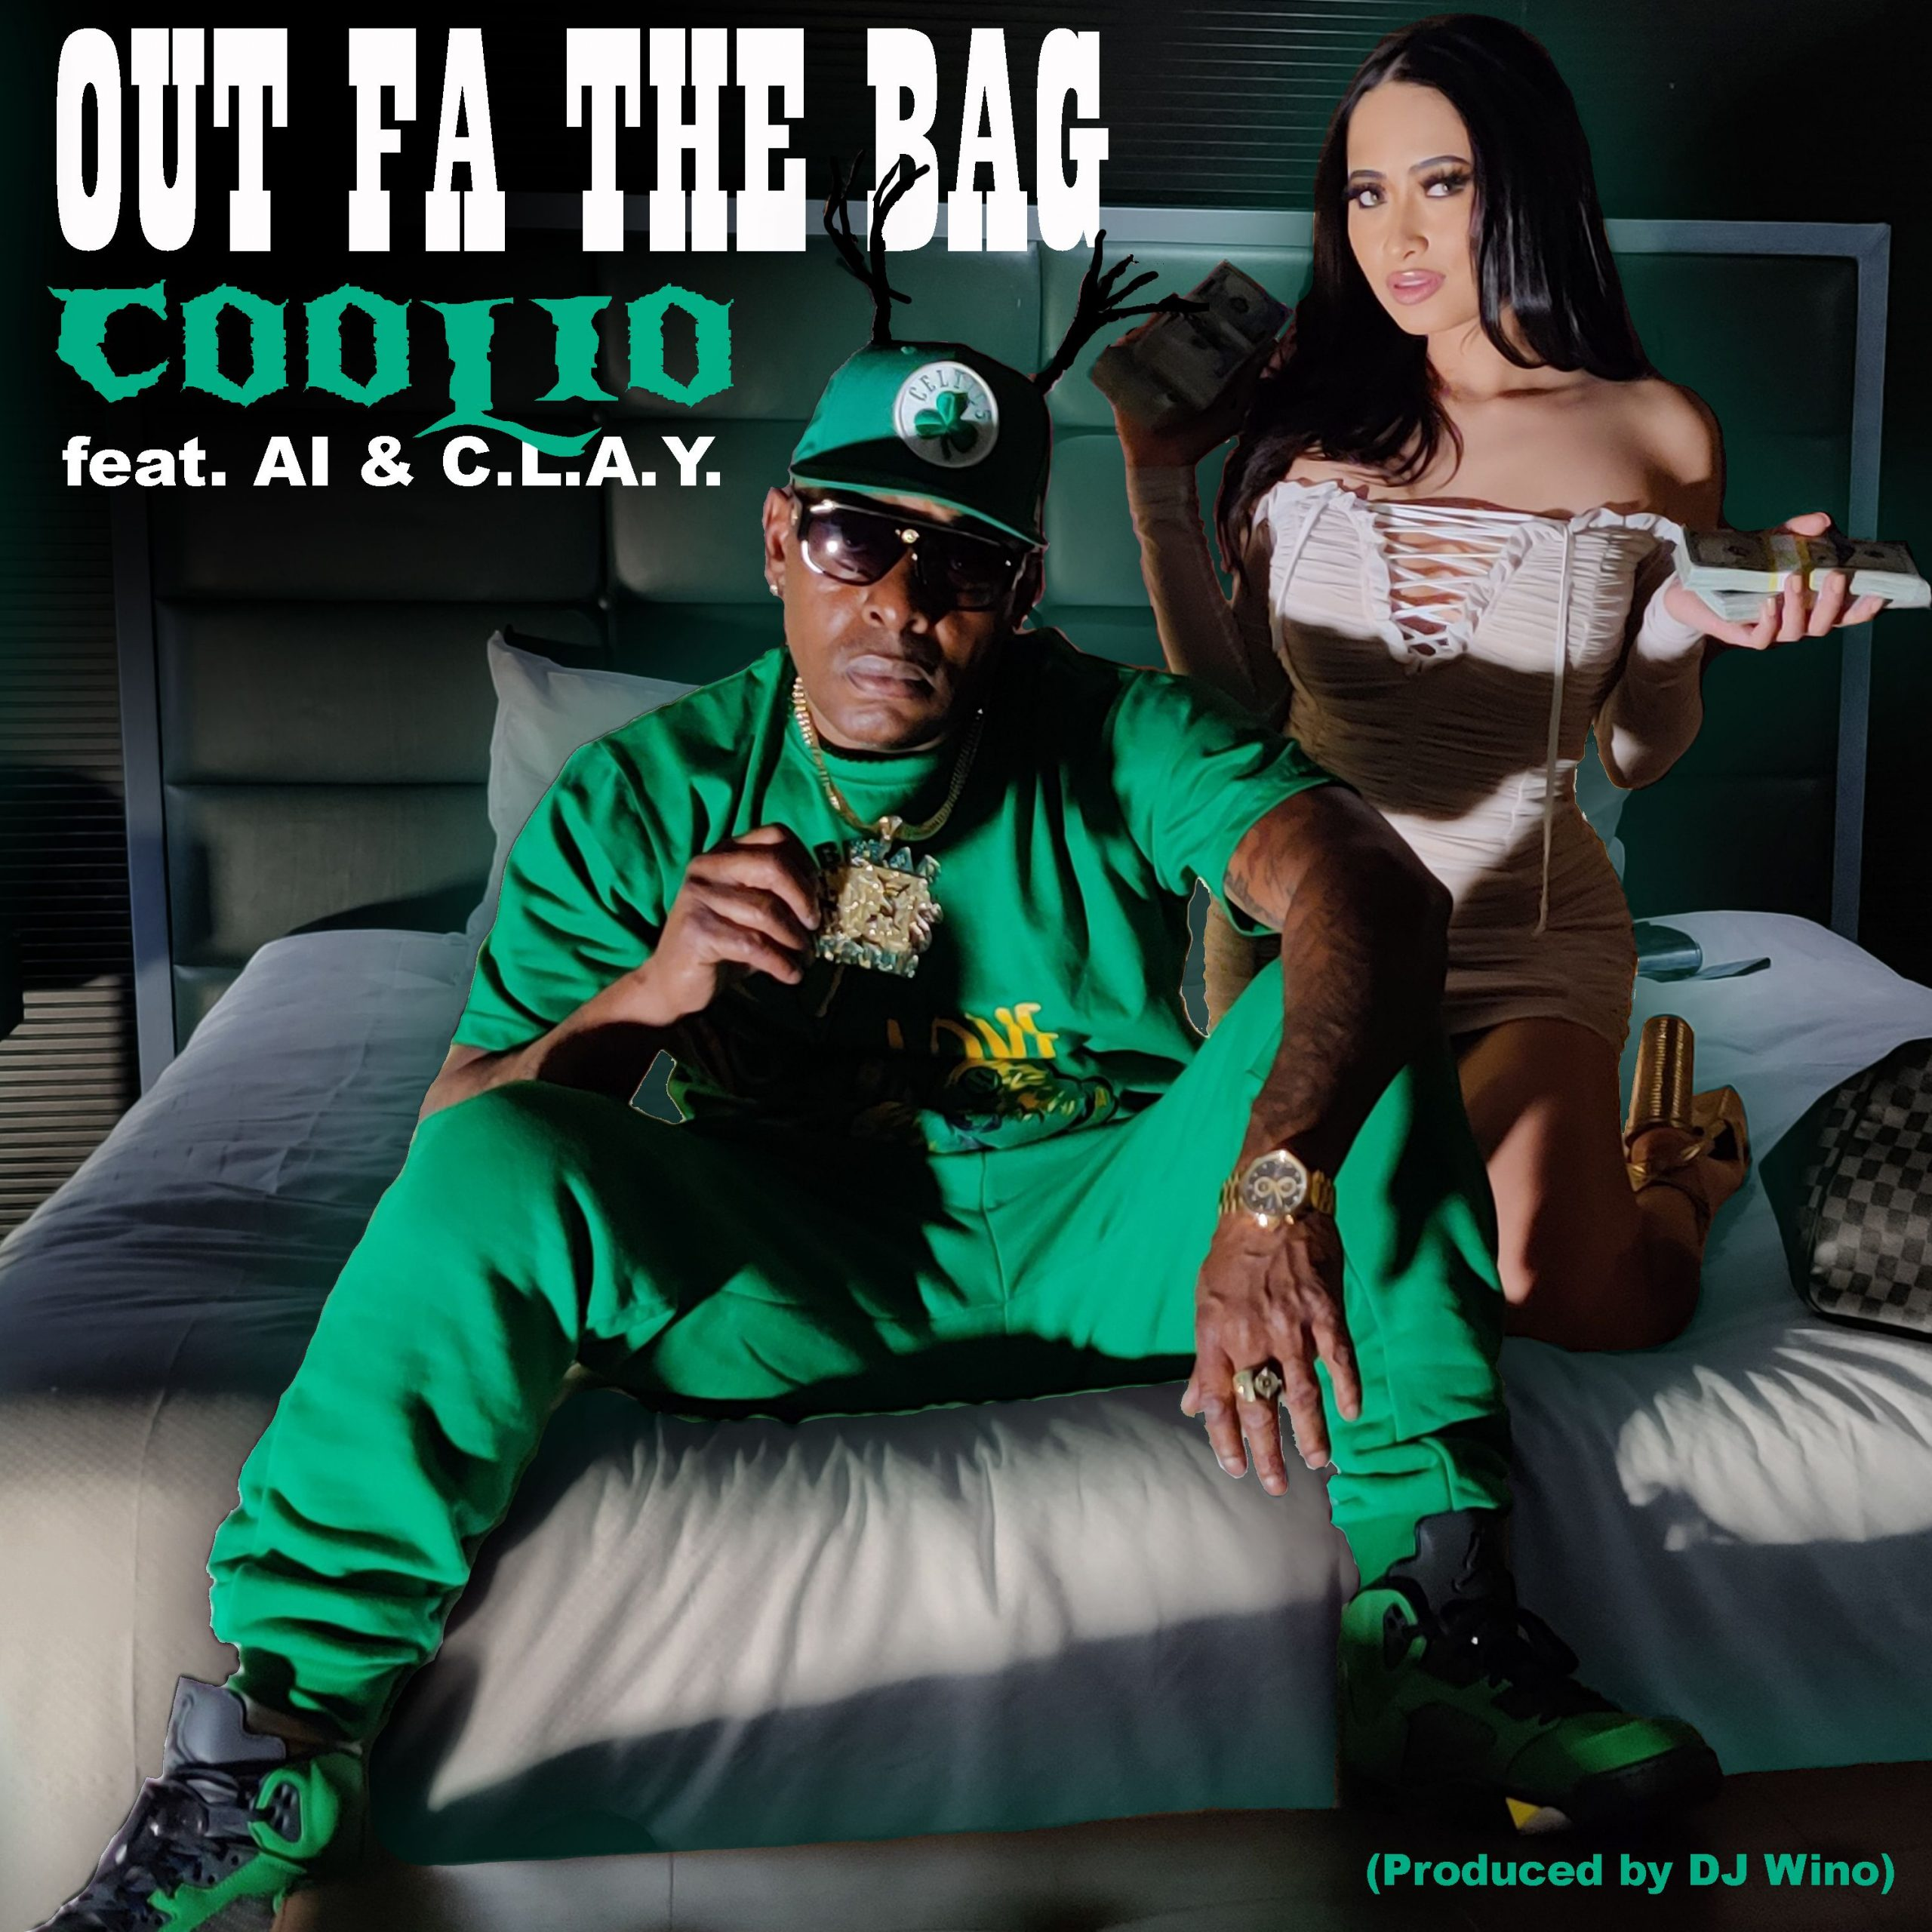 Coolio Featuring AI & C.L.A.Y. – Out Fa the Bag